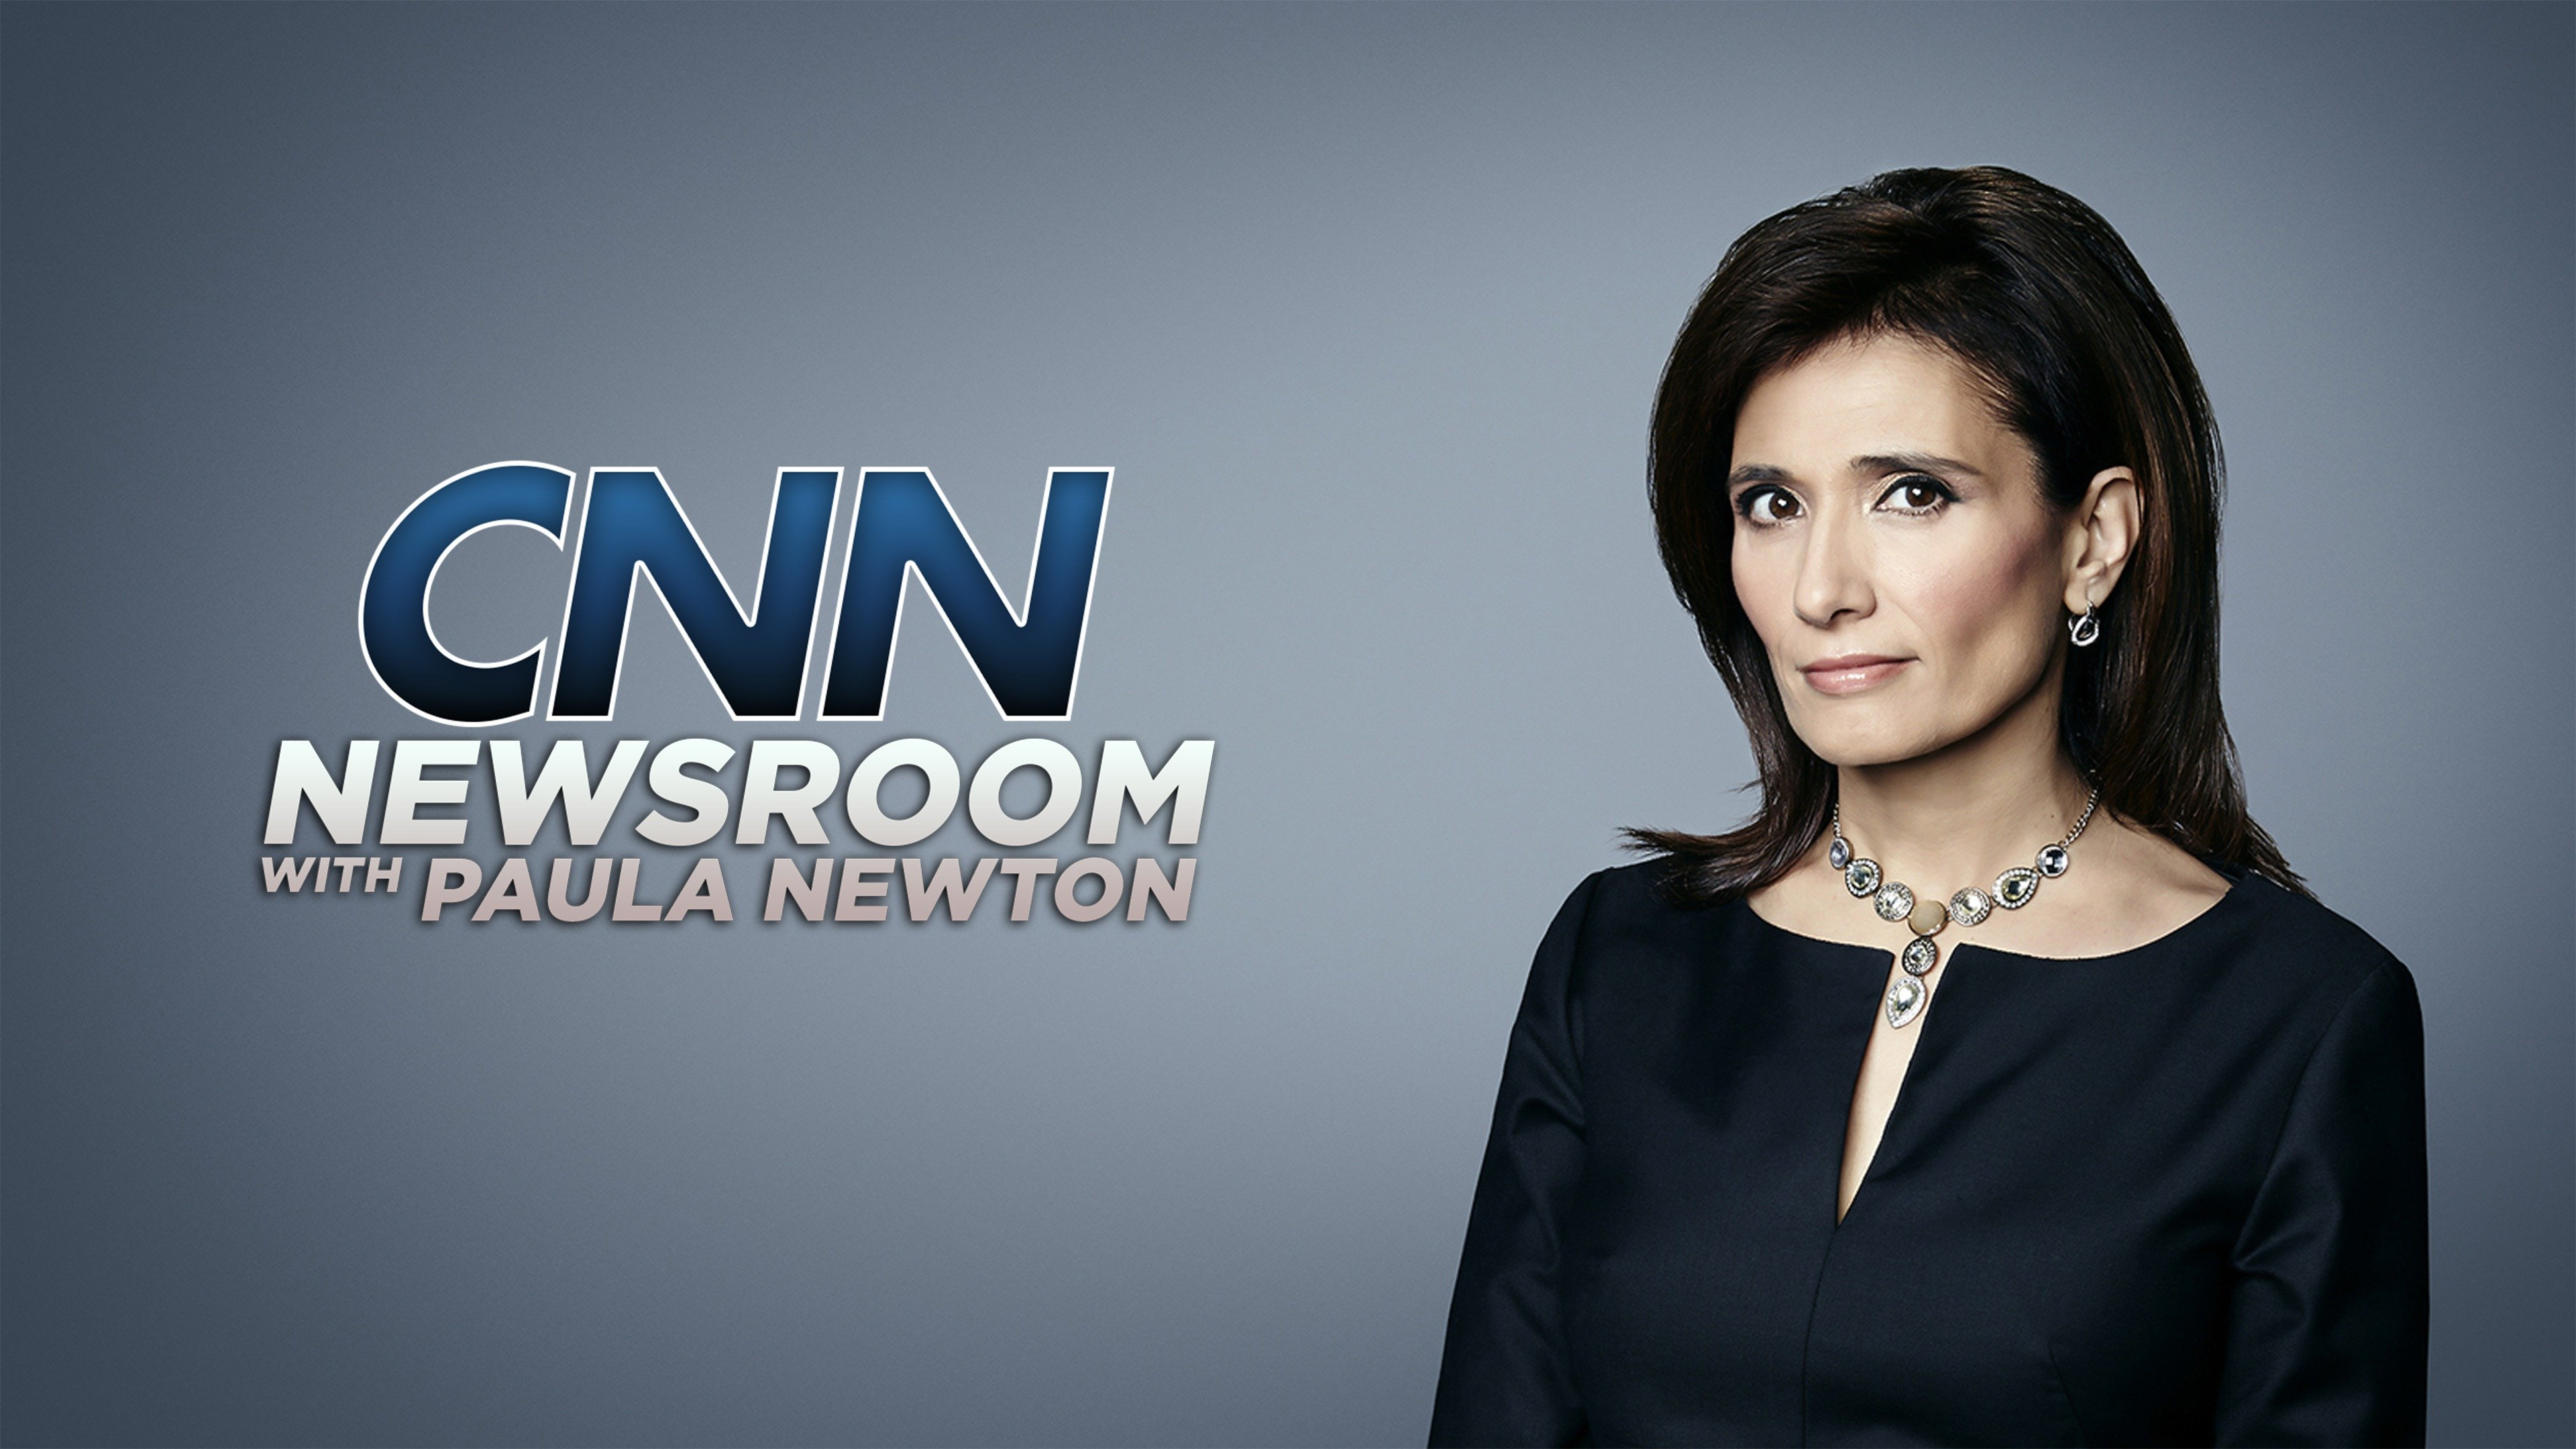 CNN Newsroom with Paula Newton